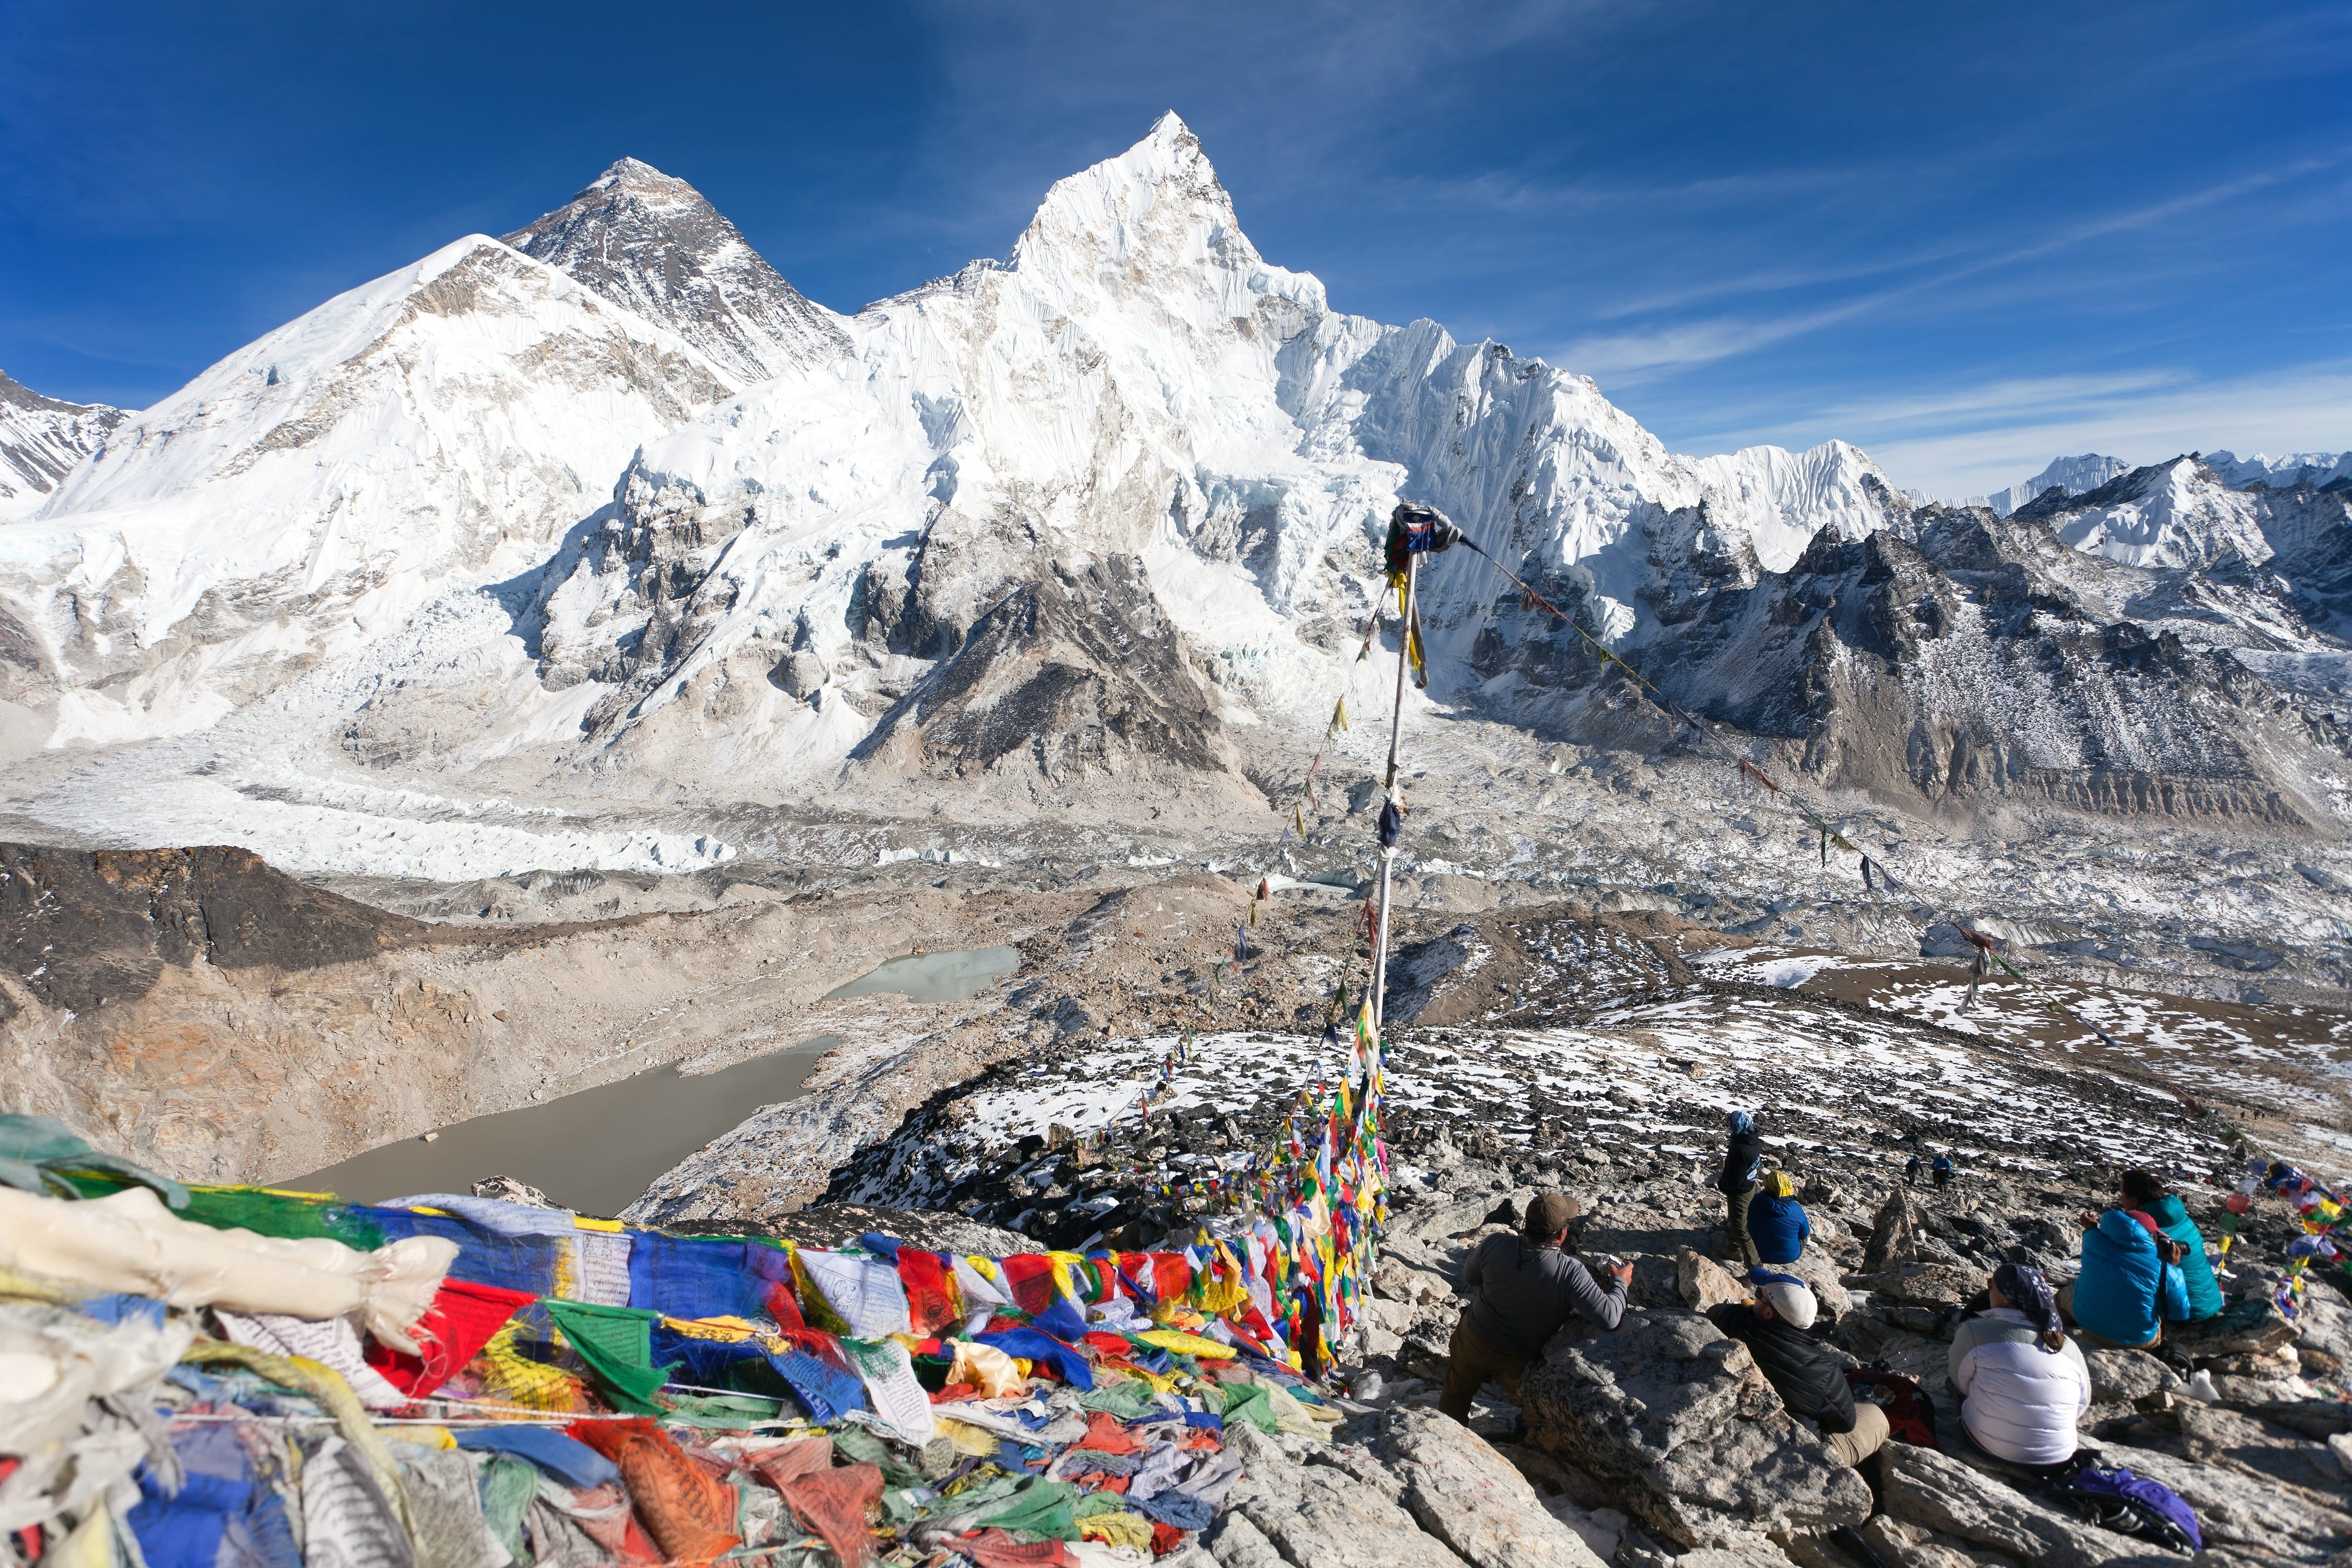 A view of Mt Everest, Lhotse and Nuptse in Sagarmatha National Park, Nepal © Daniel Prudek / Shutterstock